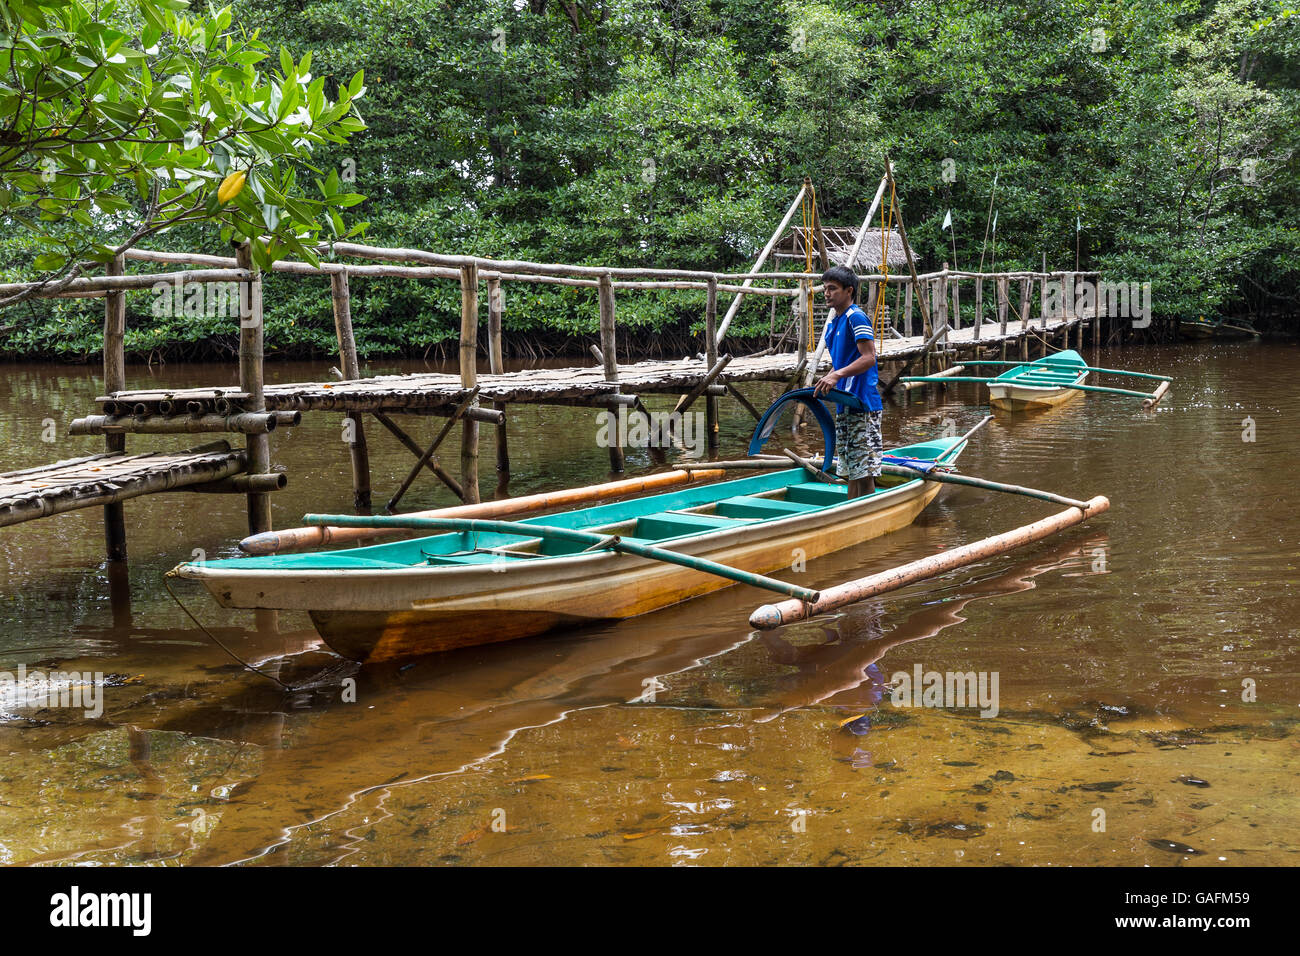 Filipino Outrigger - An outrigger is a part of a boat's rigging which is rigid and extends beyond the side or - Stock Image